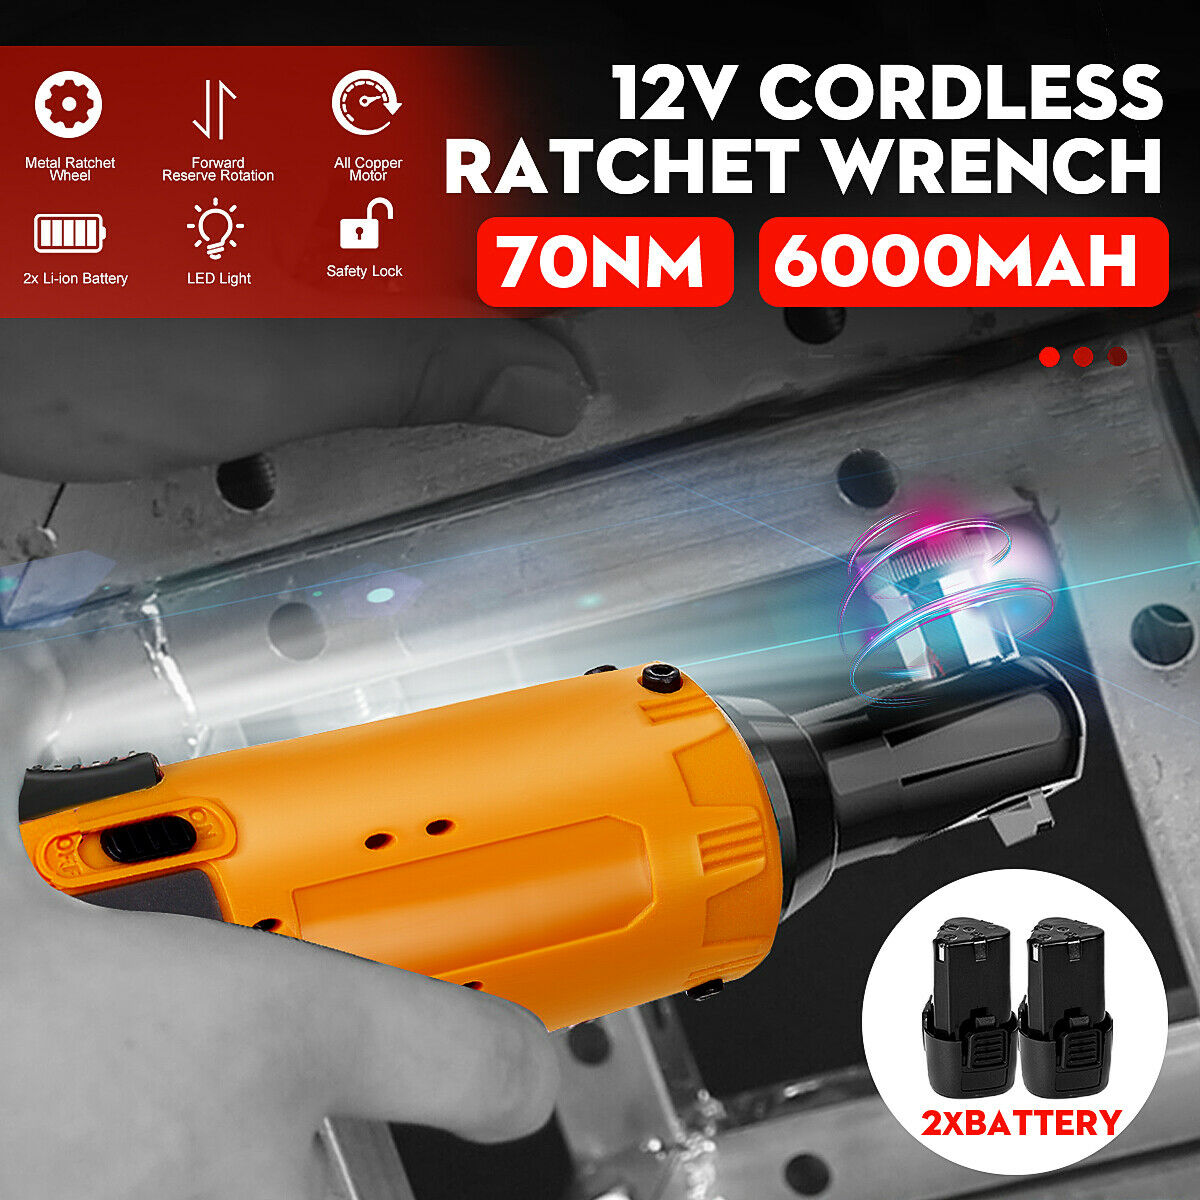 12V 70Nm 3//8/'/' Cordless Electric Ratchet Wrench Right Angle Wrench /& 1-2xBattery